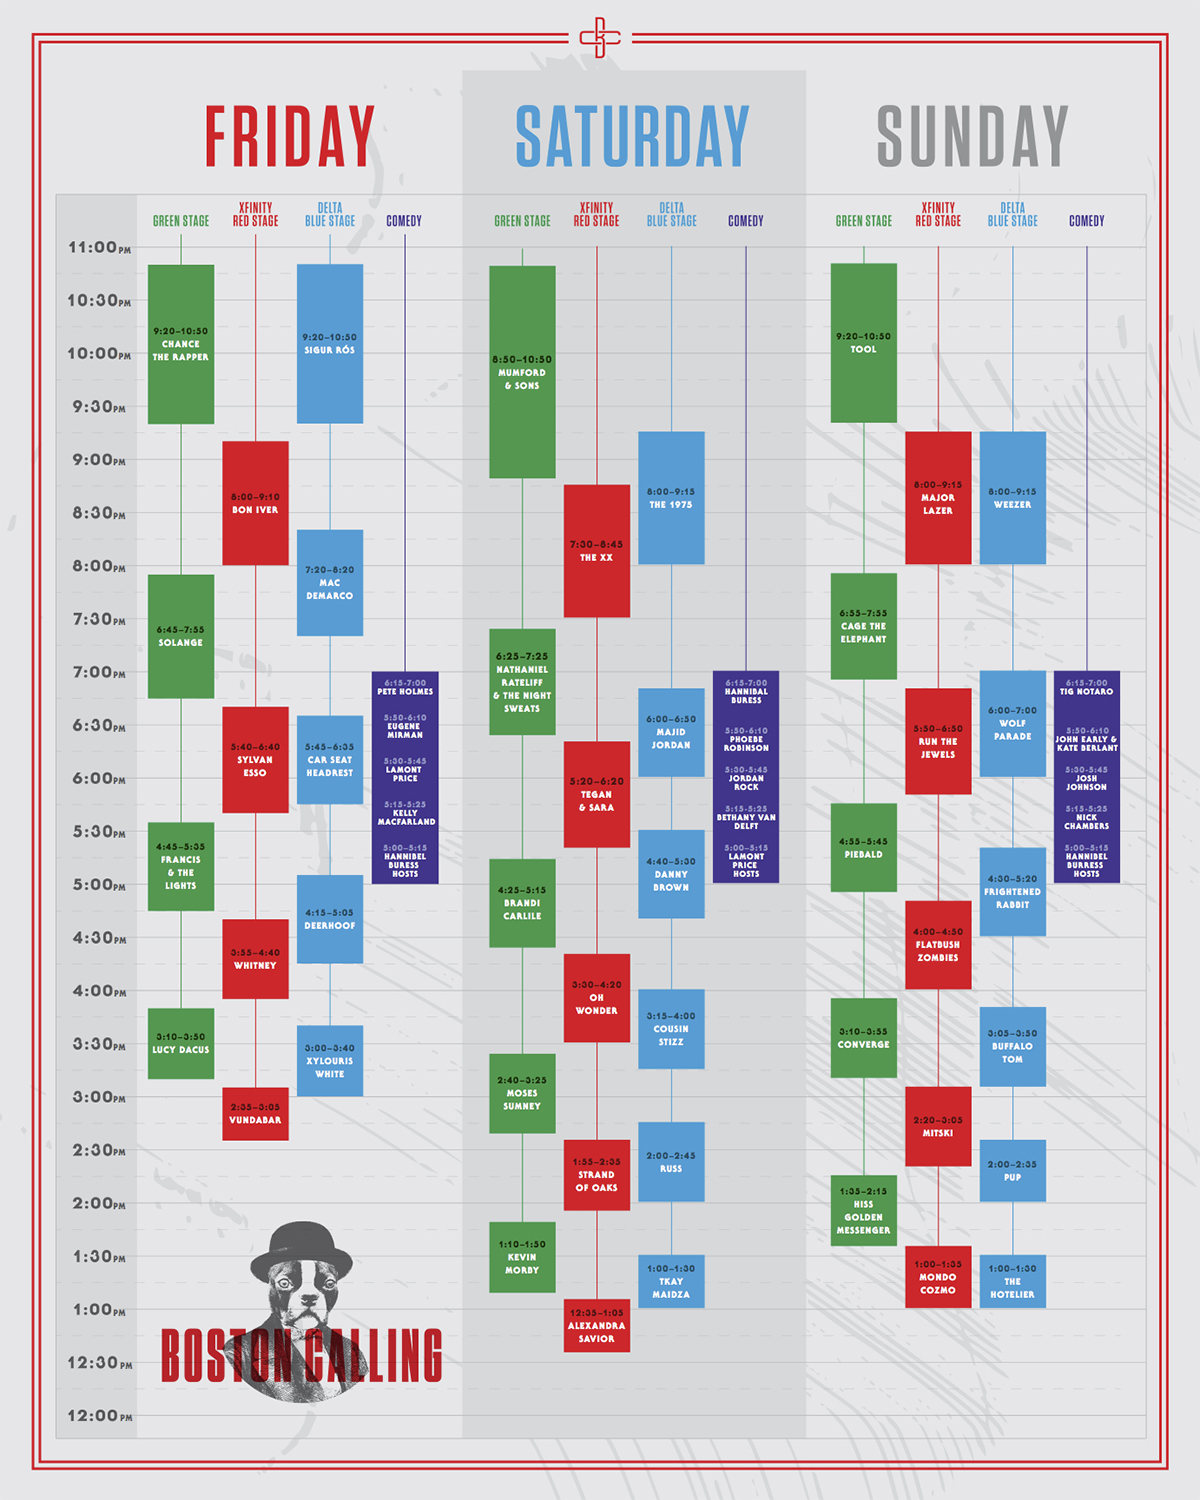 Boston Calling Daily Lineup Schedule 2017